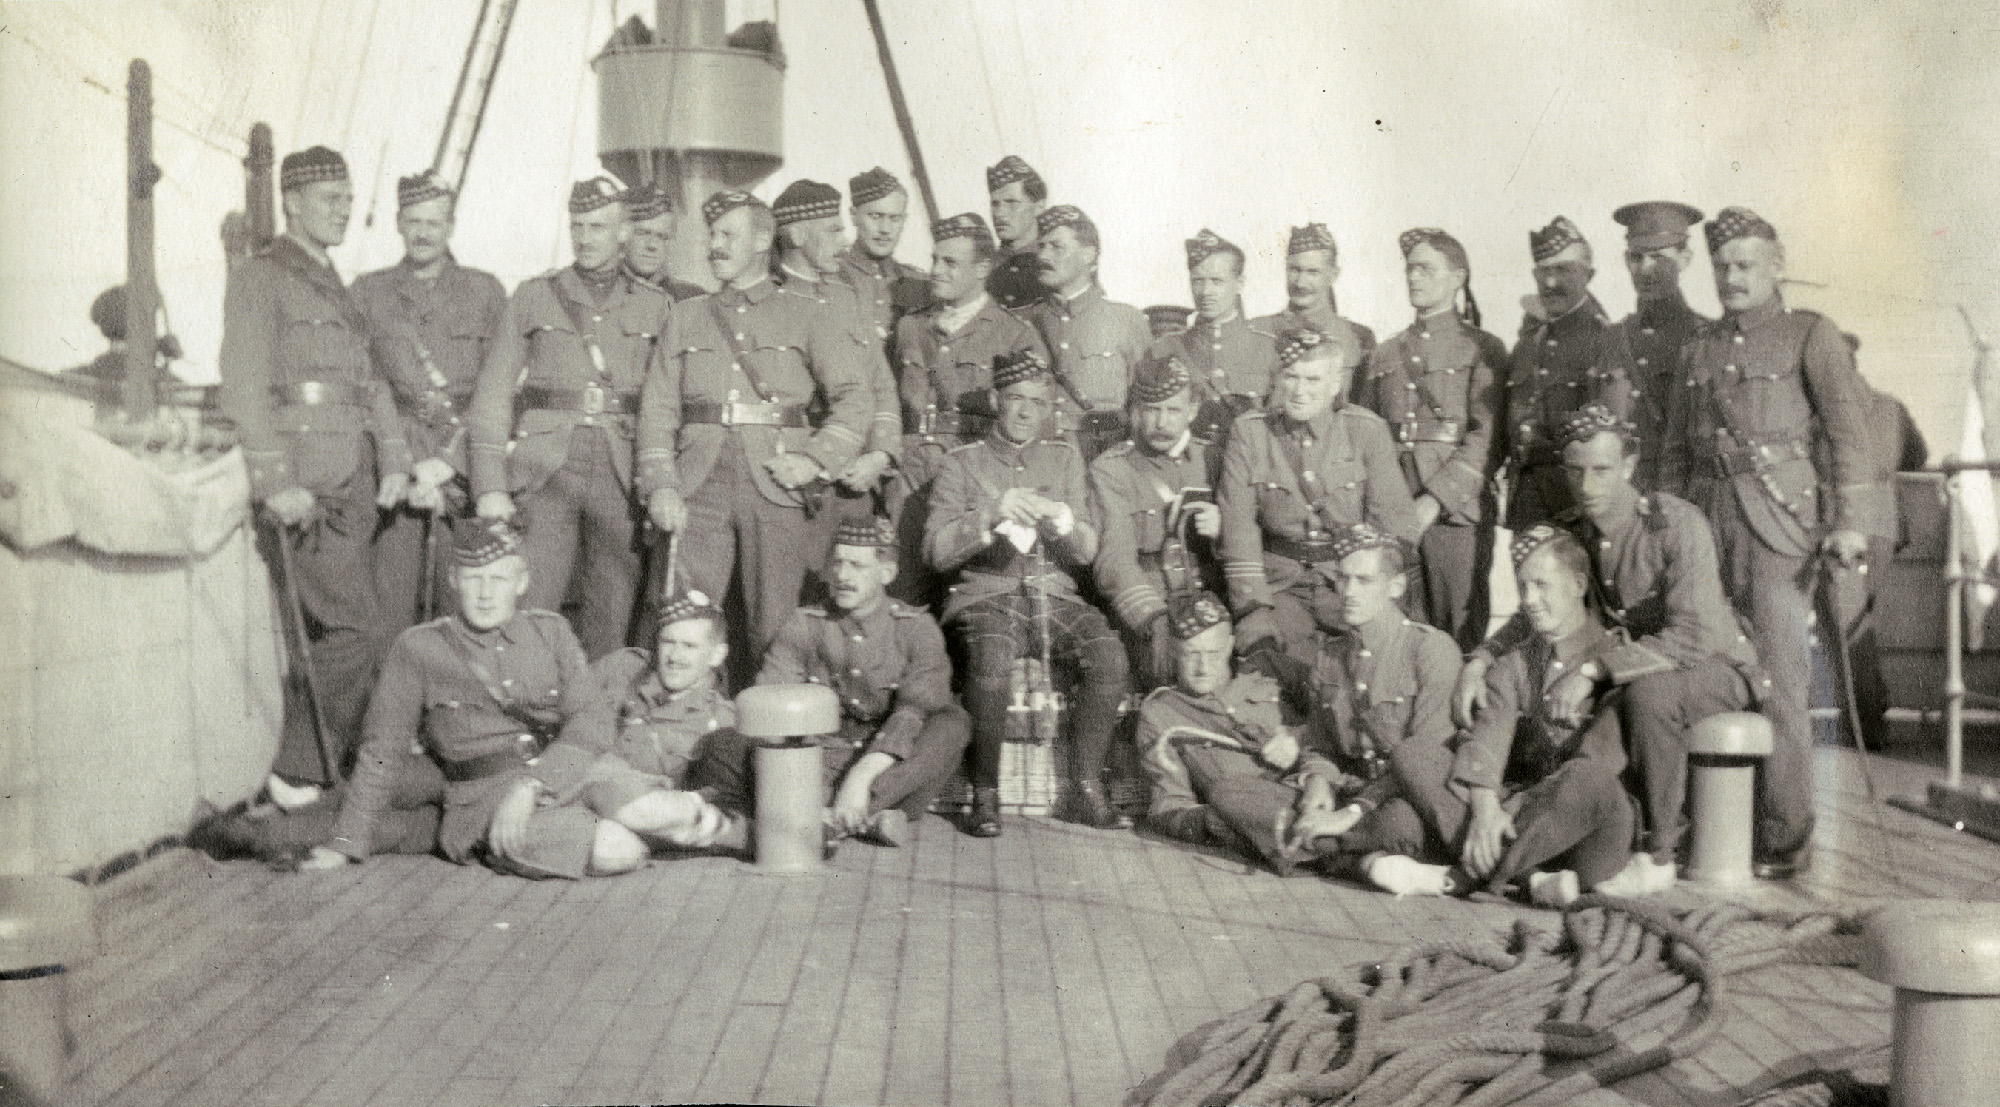 The Seaforth officers serving in the 16th Battalion (Canadian Scottish) on the troopship Andania en route to Egnland with the 1st Canadian Division, October, 1914.